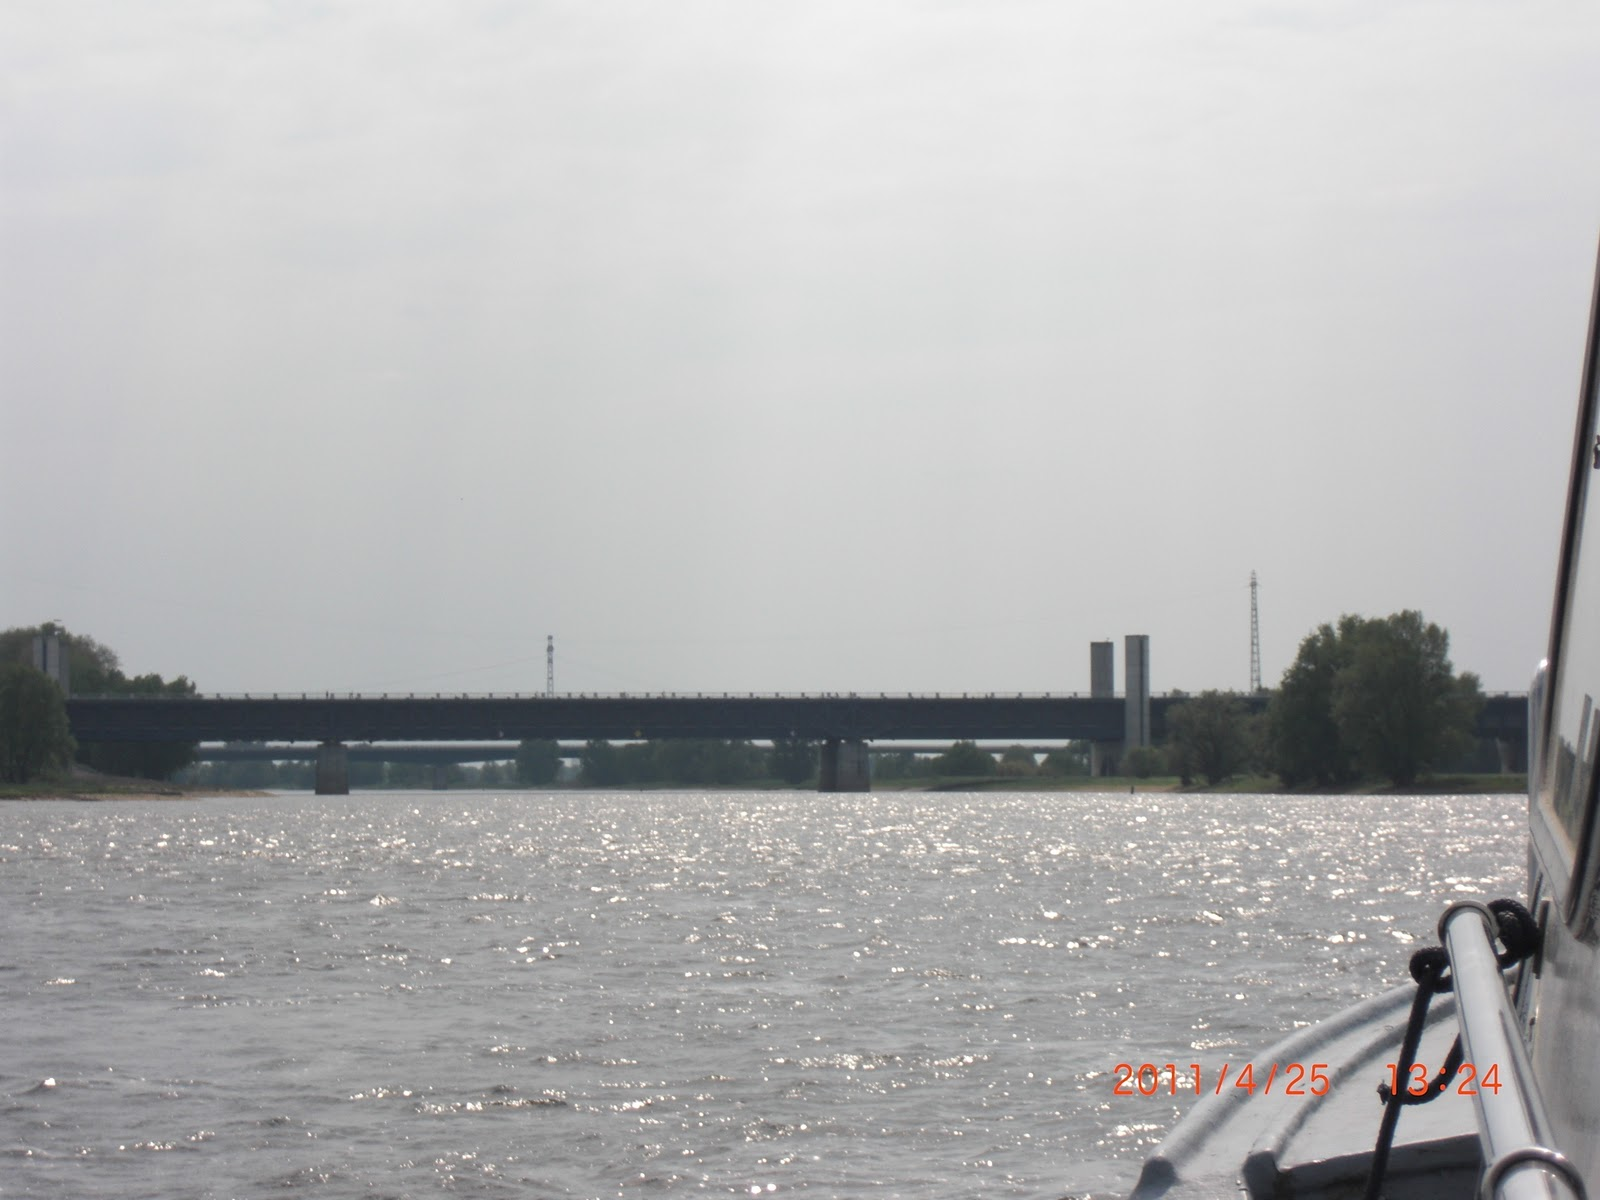 Ikk Magdeburg On European Waterways Akvedukten över Elbe Nära Magdeburg